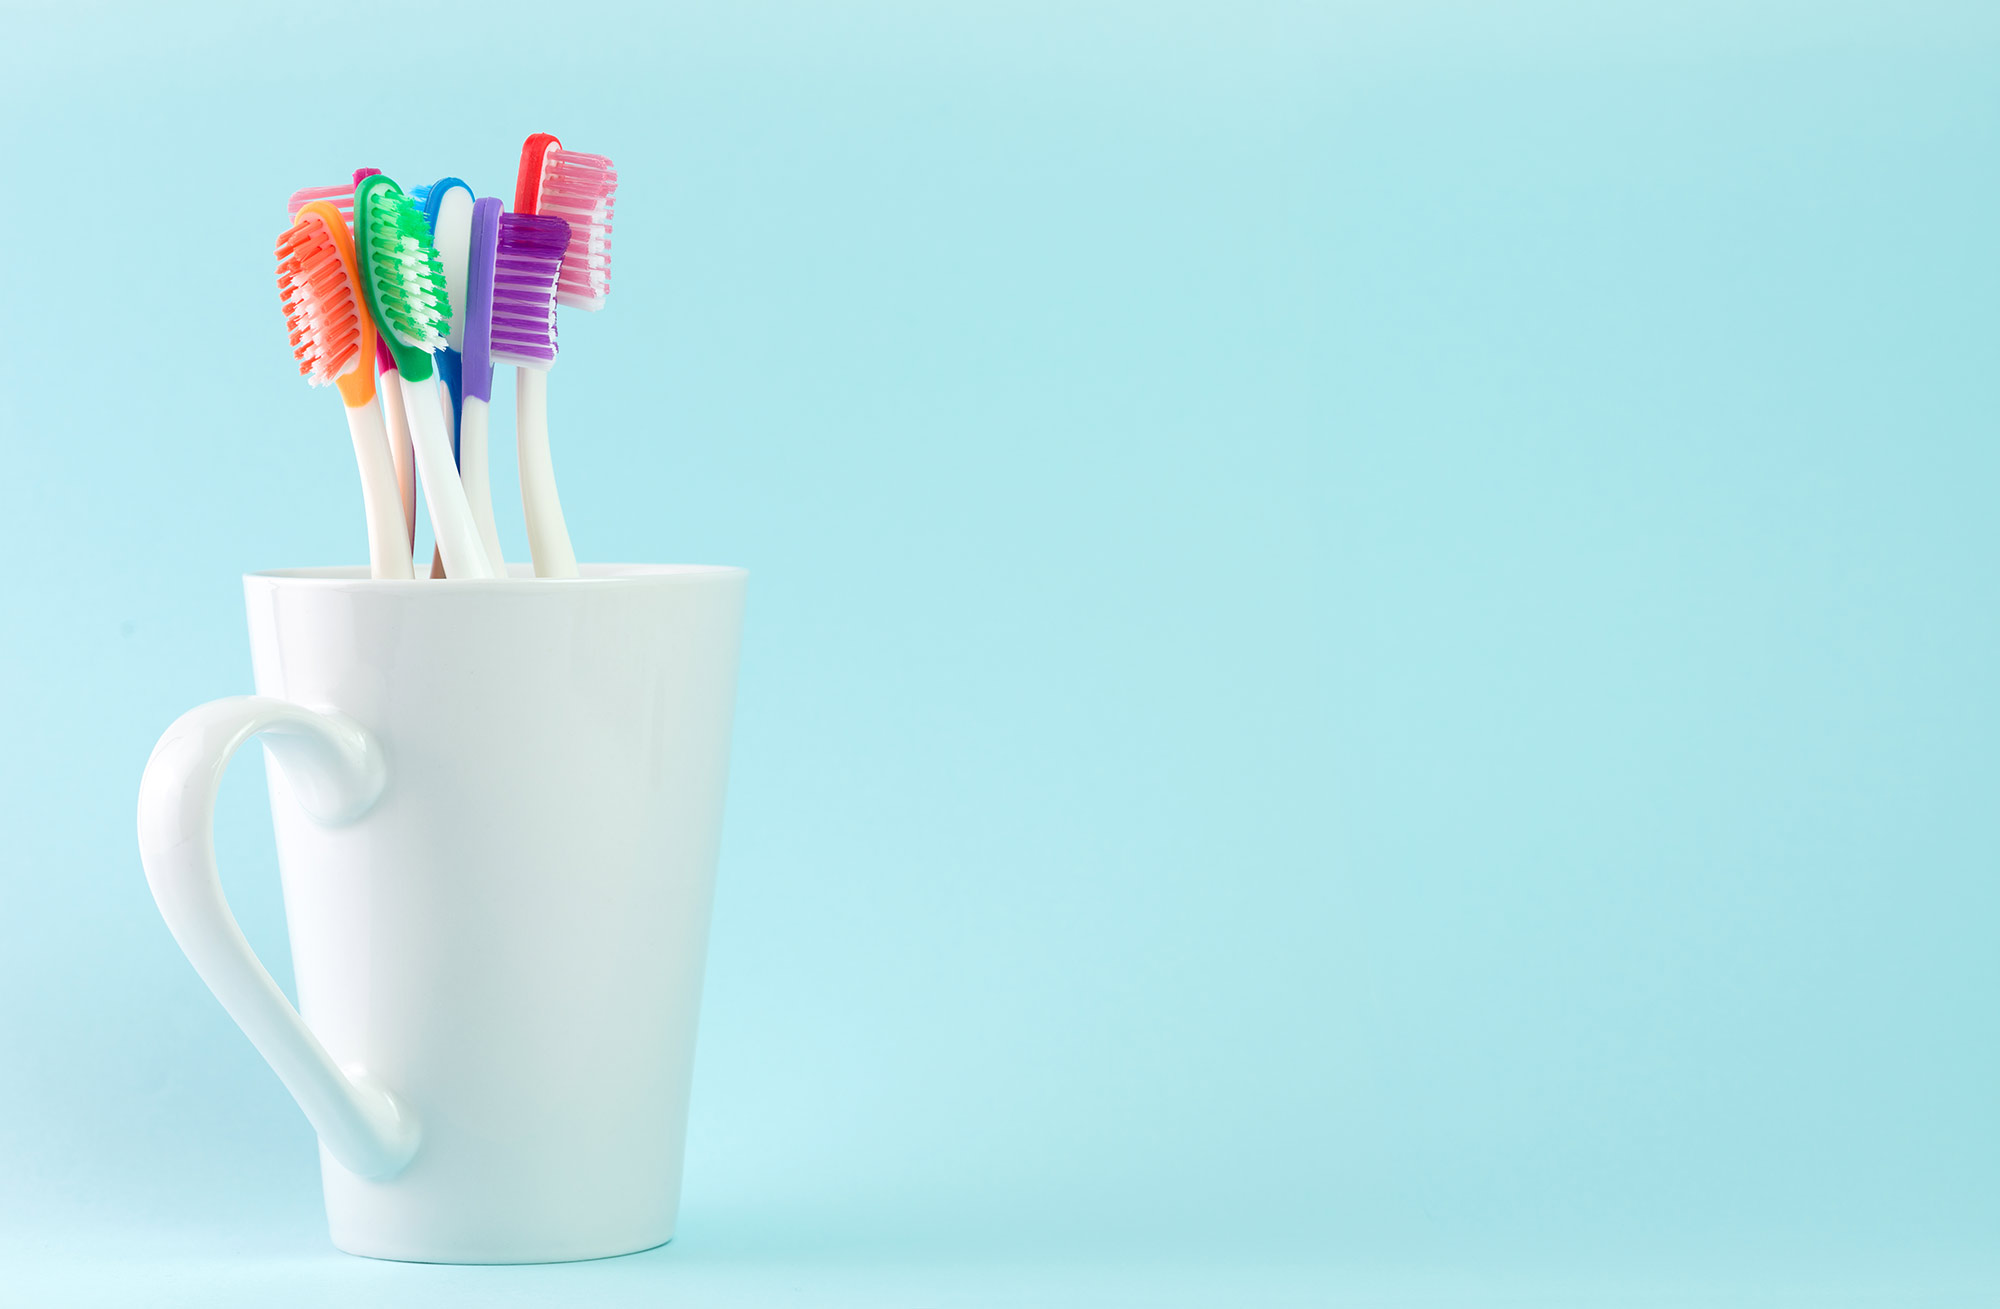 Dentists say the pandemic could have a detrimental effect on children's oral health